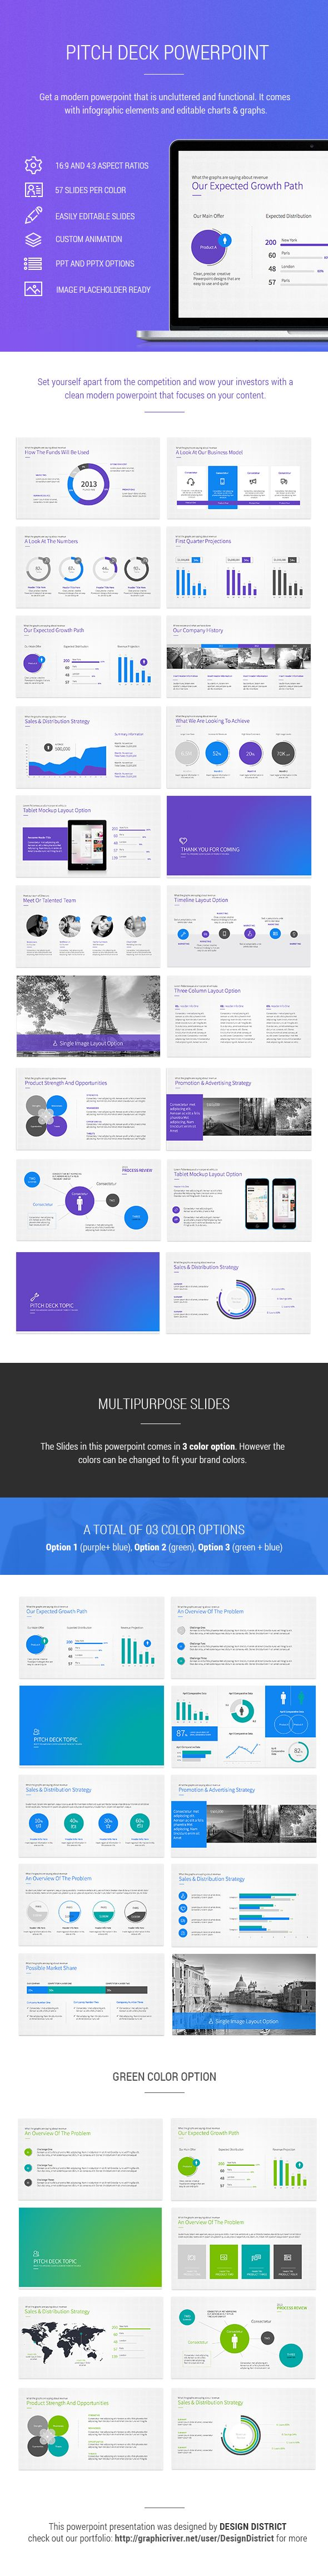 Pitch Deck Powerpoint by Design District, via Behance